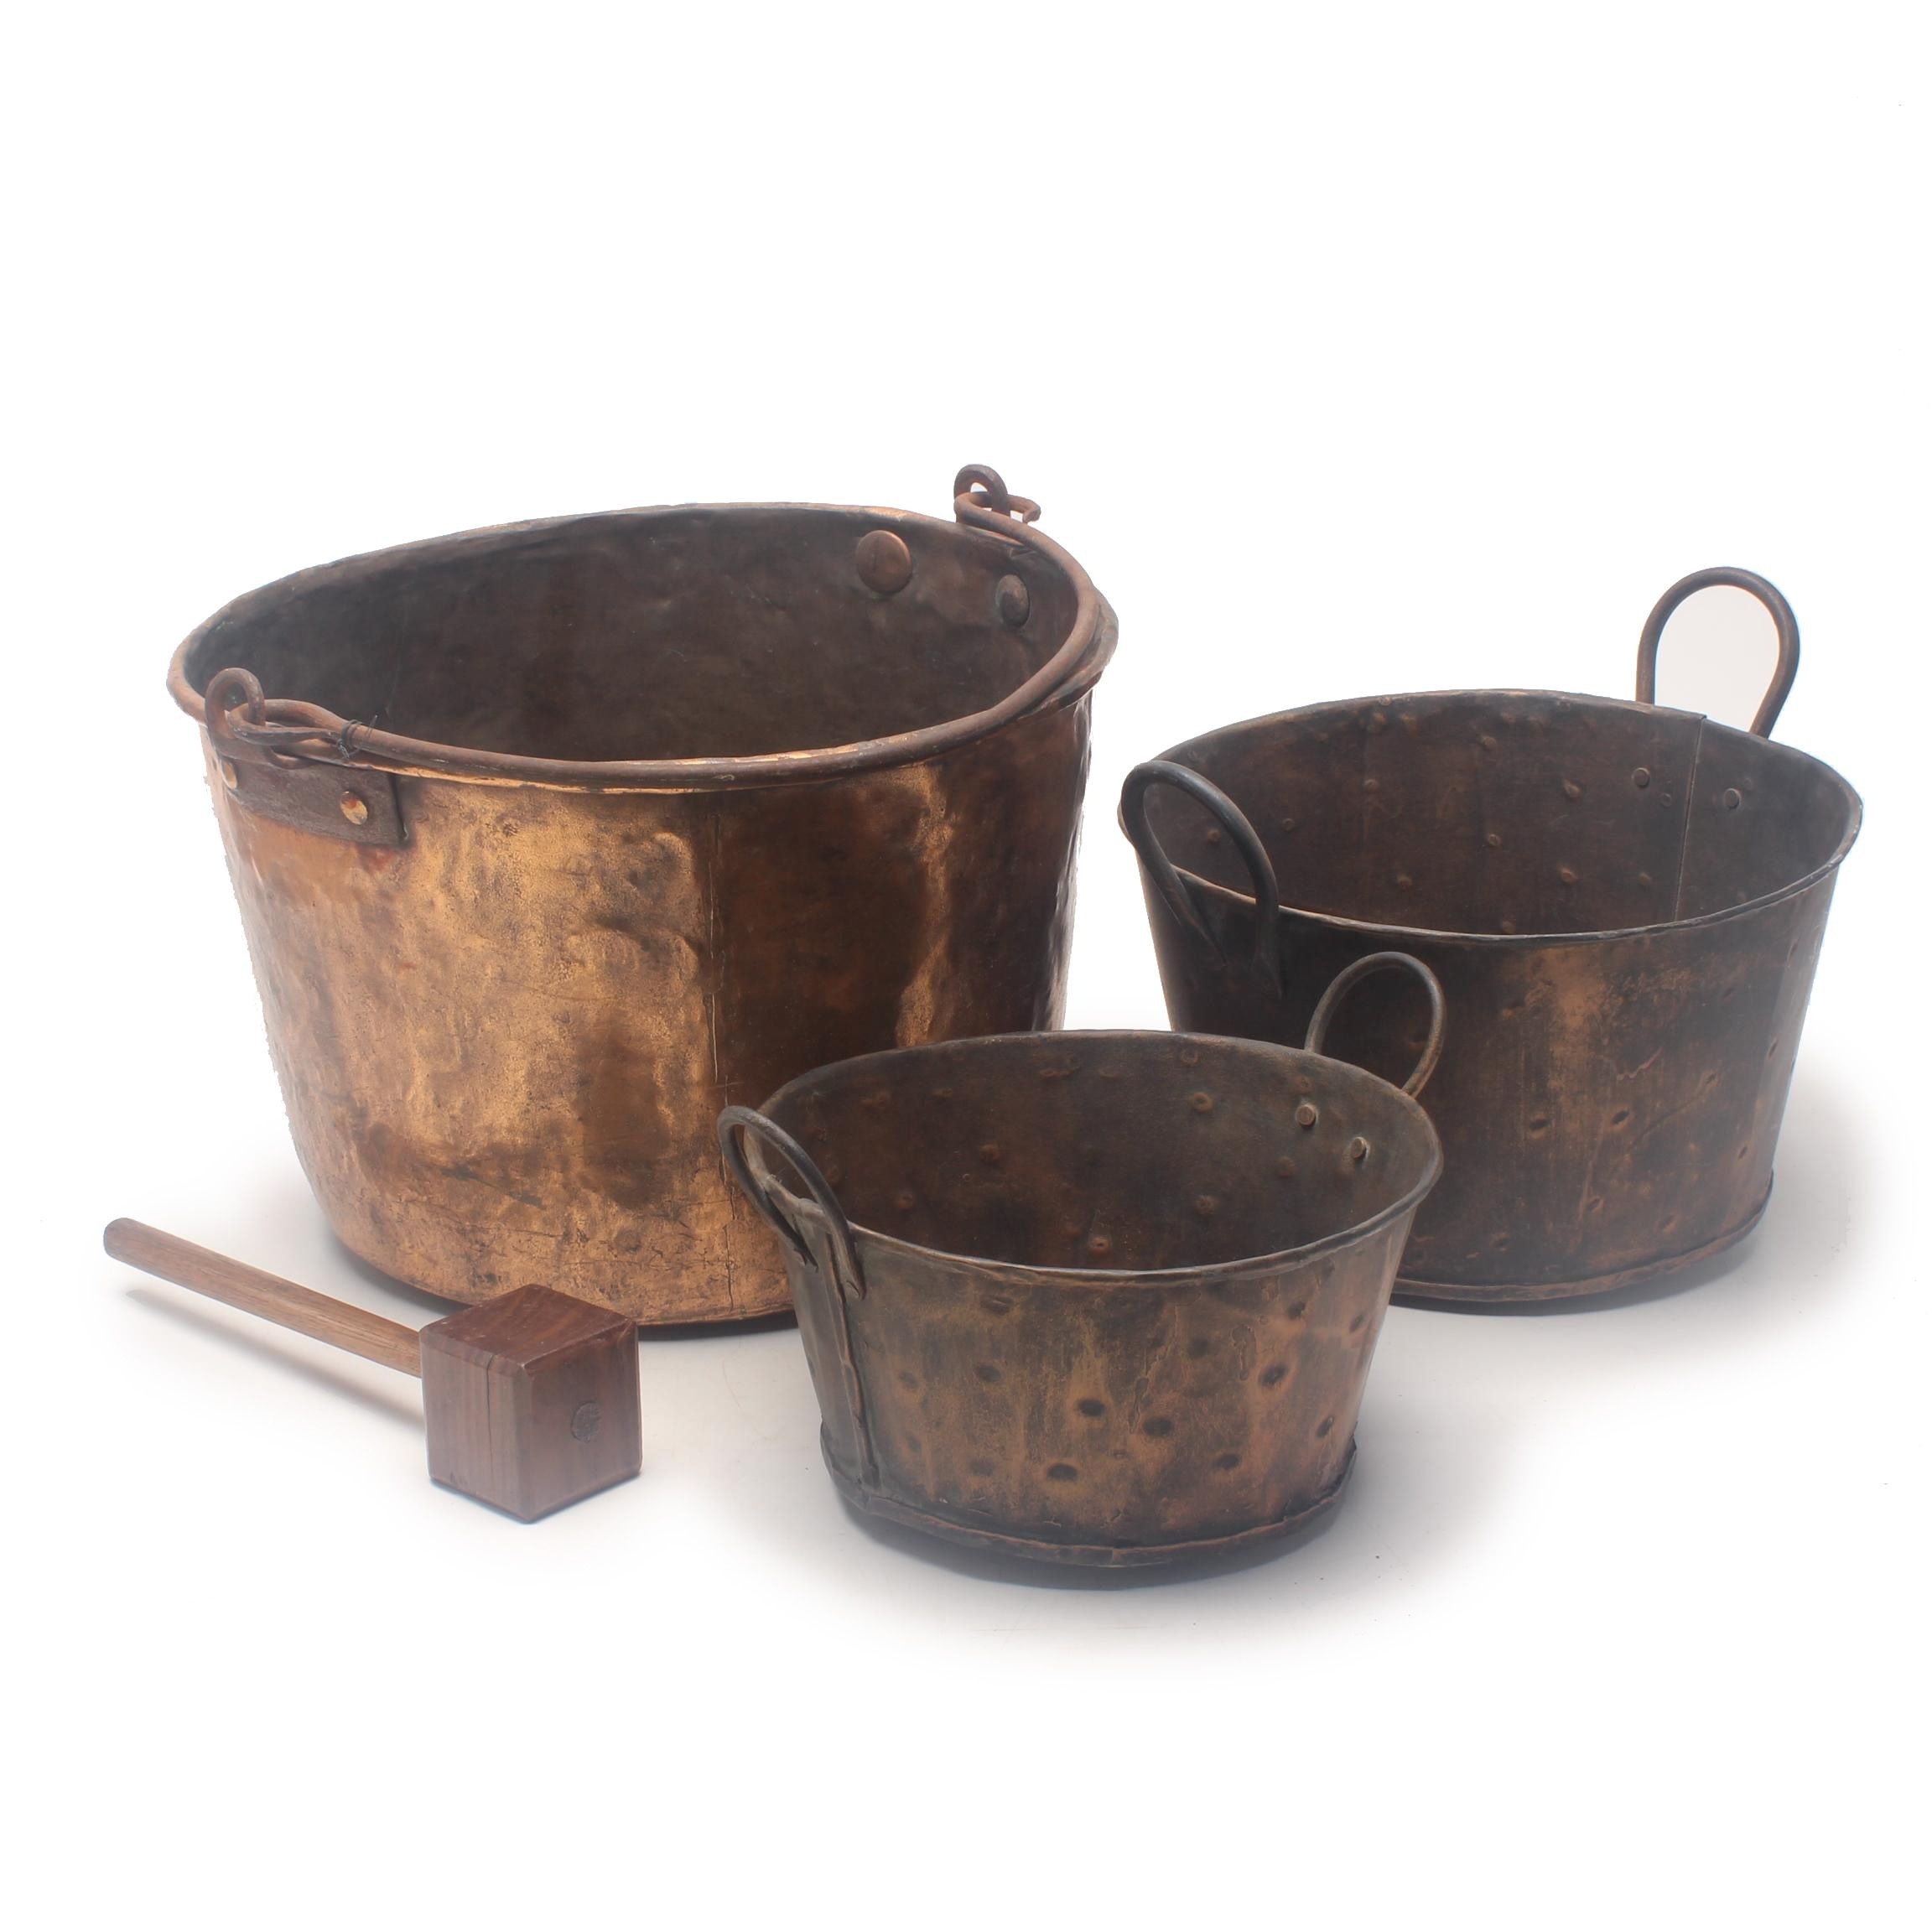 Hammered Copper Cauldron and Dual Handled Pots, Mid-19th Century